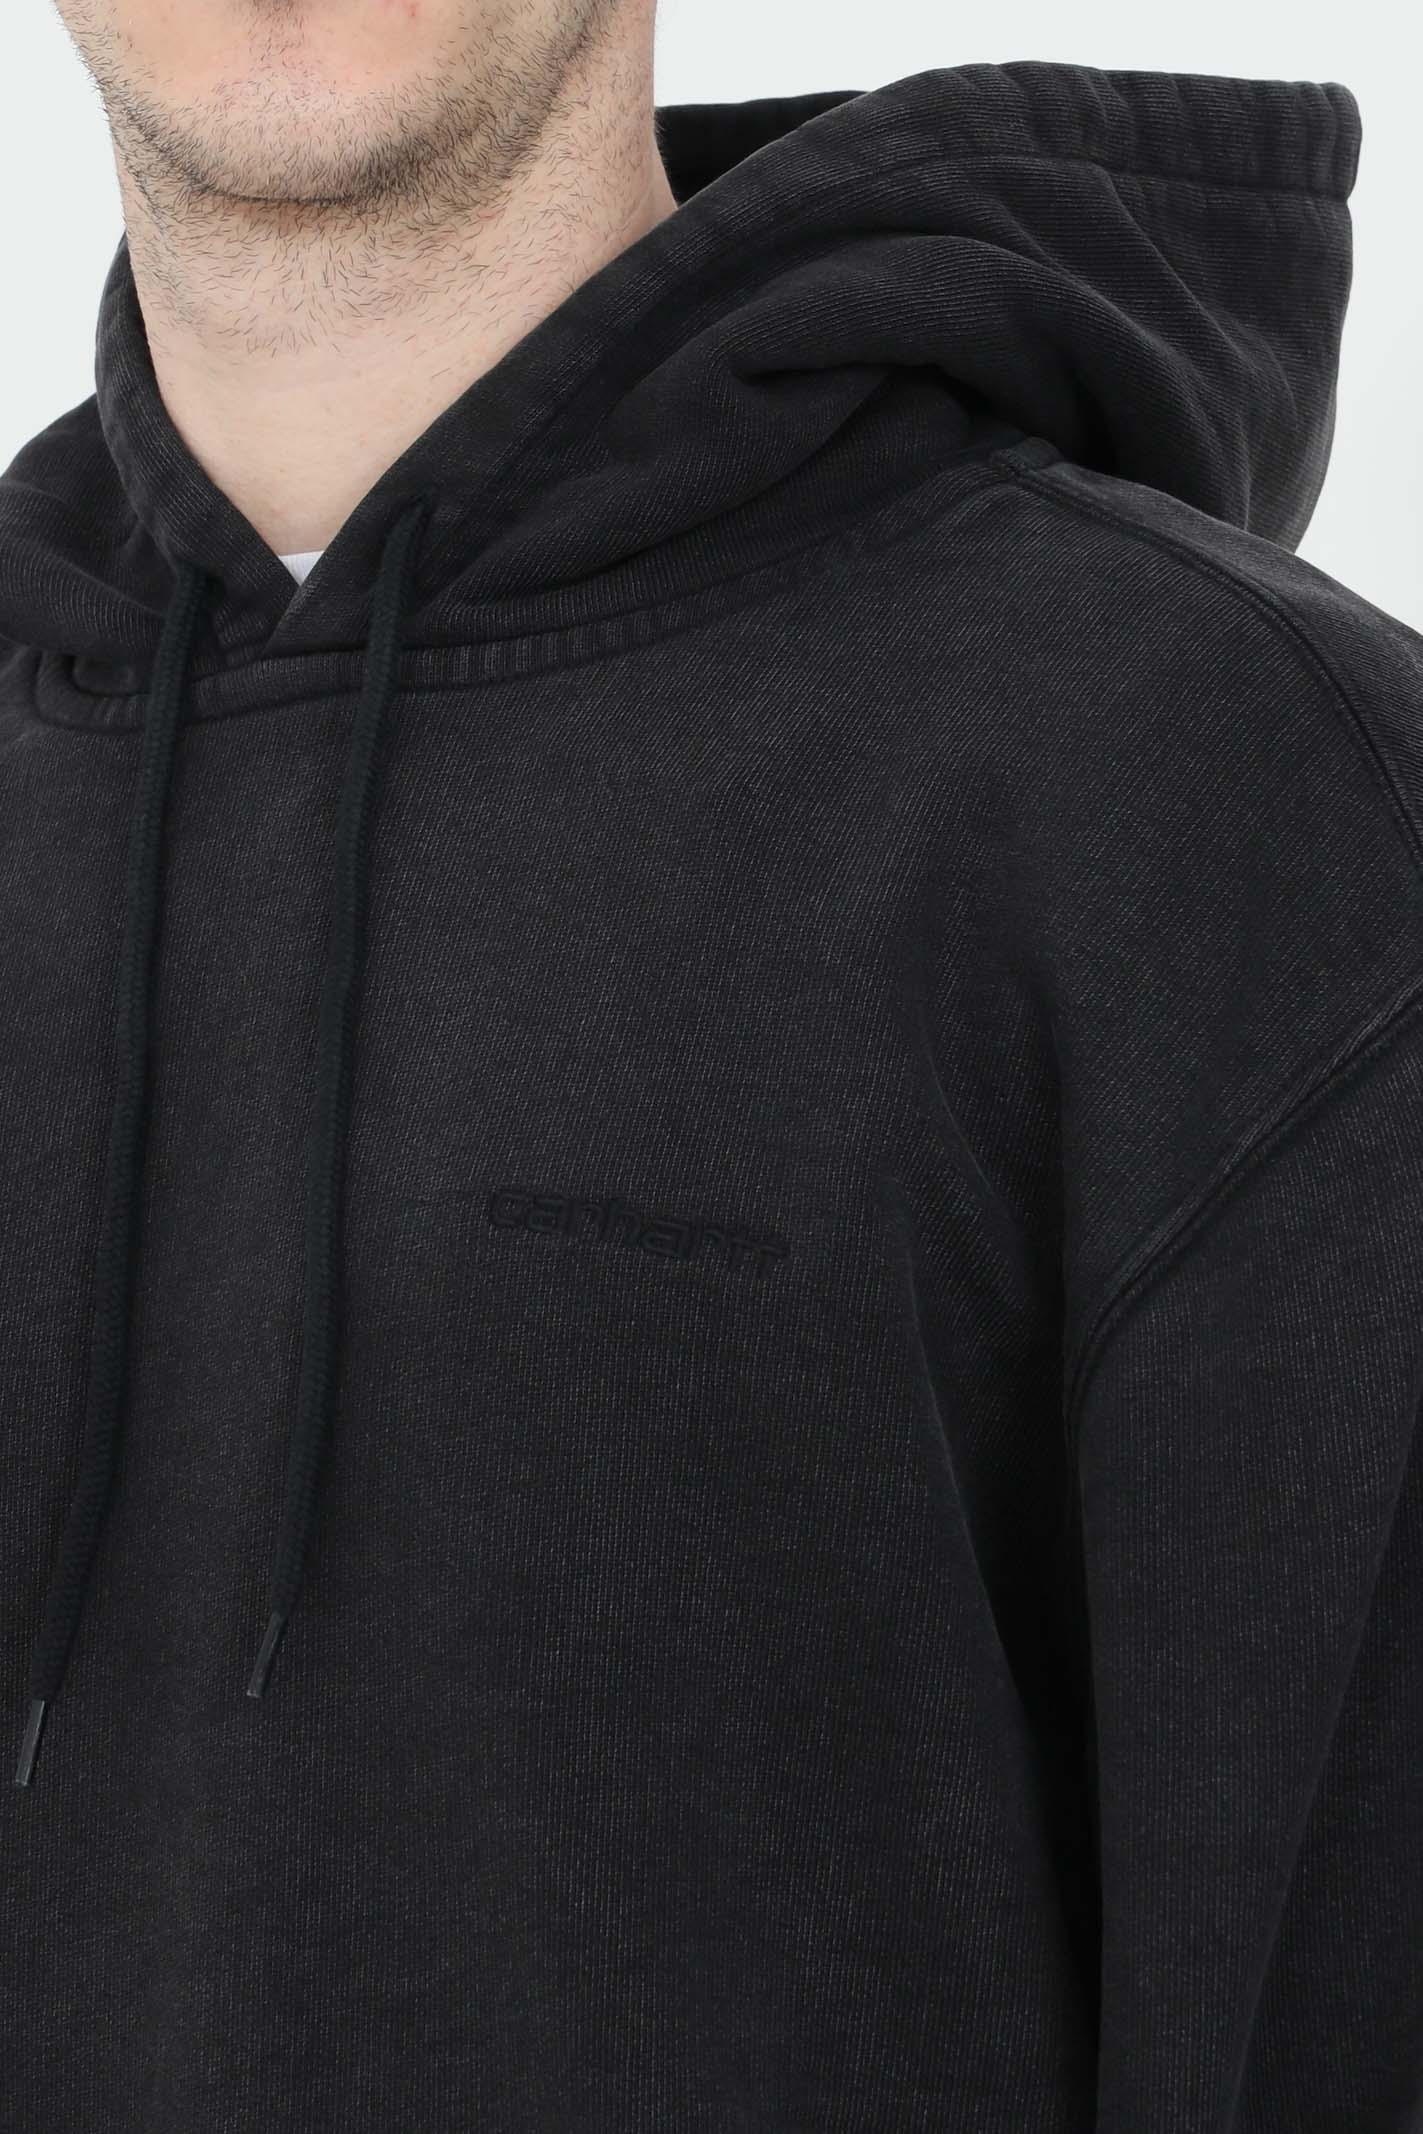 Black hooded mosby script hoodie with laces, front pocket and embroidered logo. Carhartt  CARHARTT | Sweatshirt | I028586.0389.00